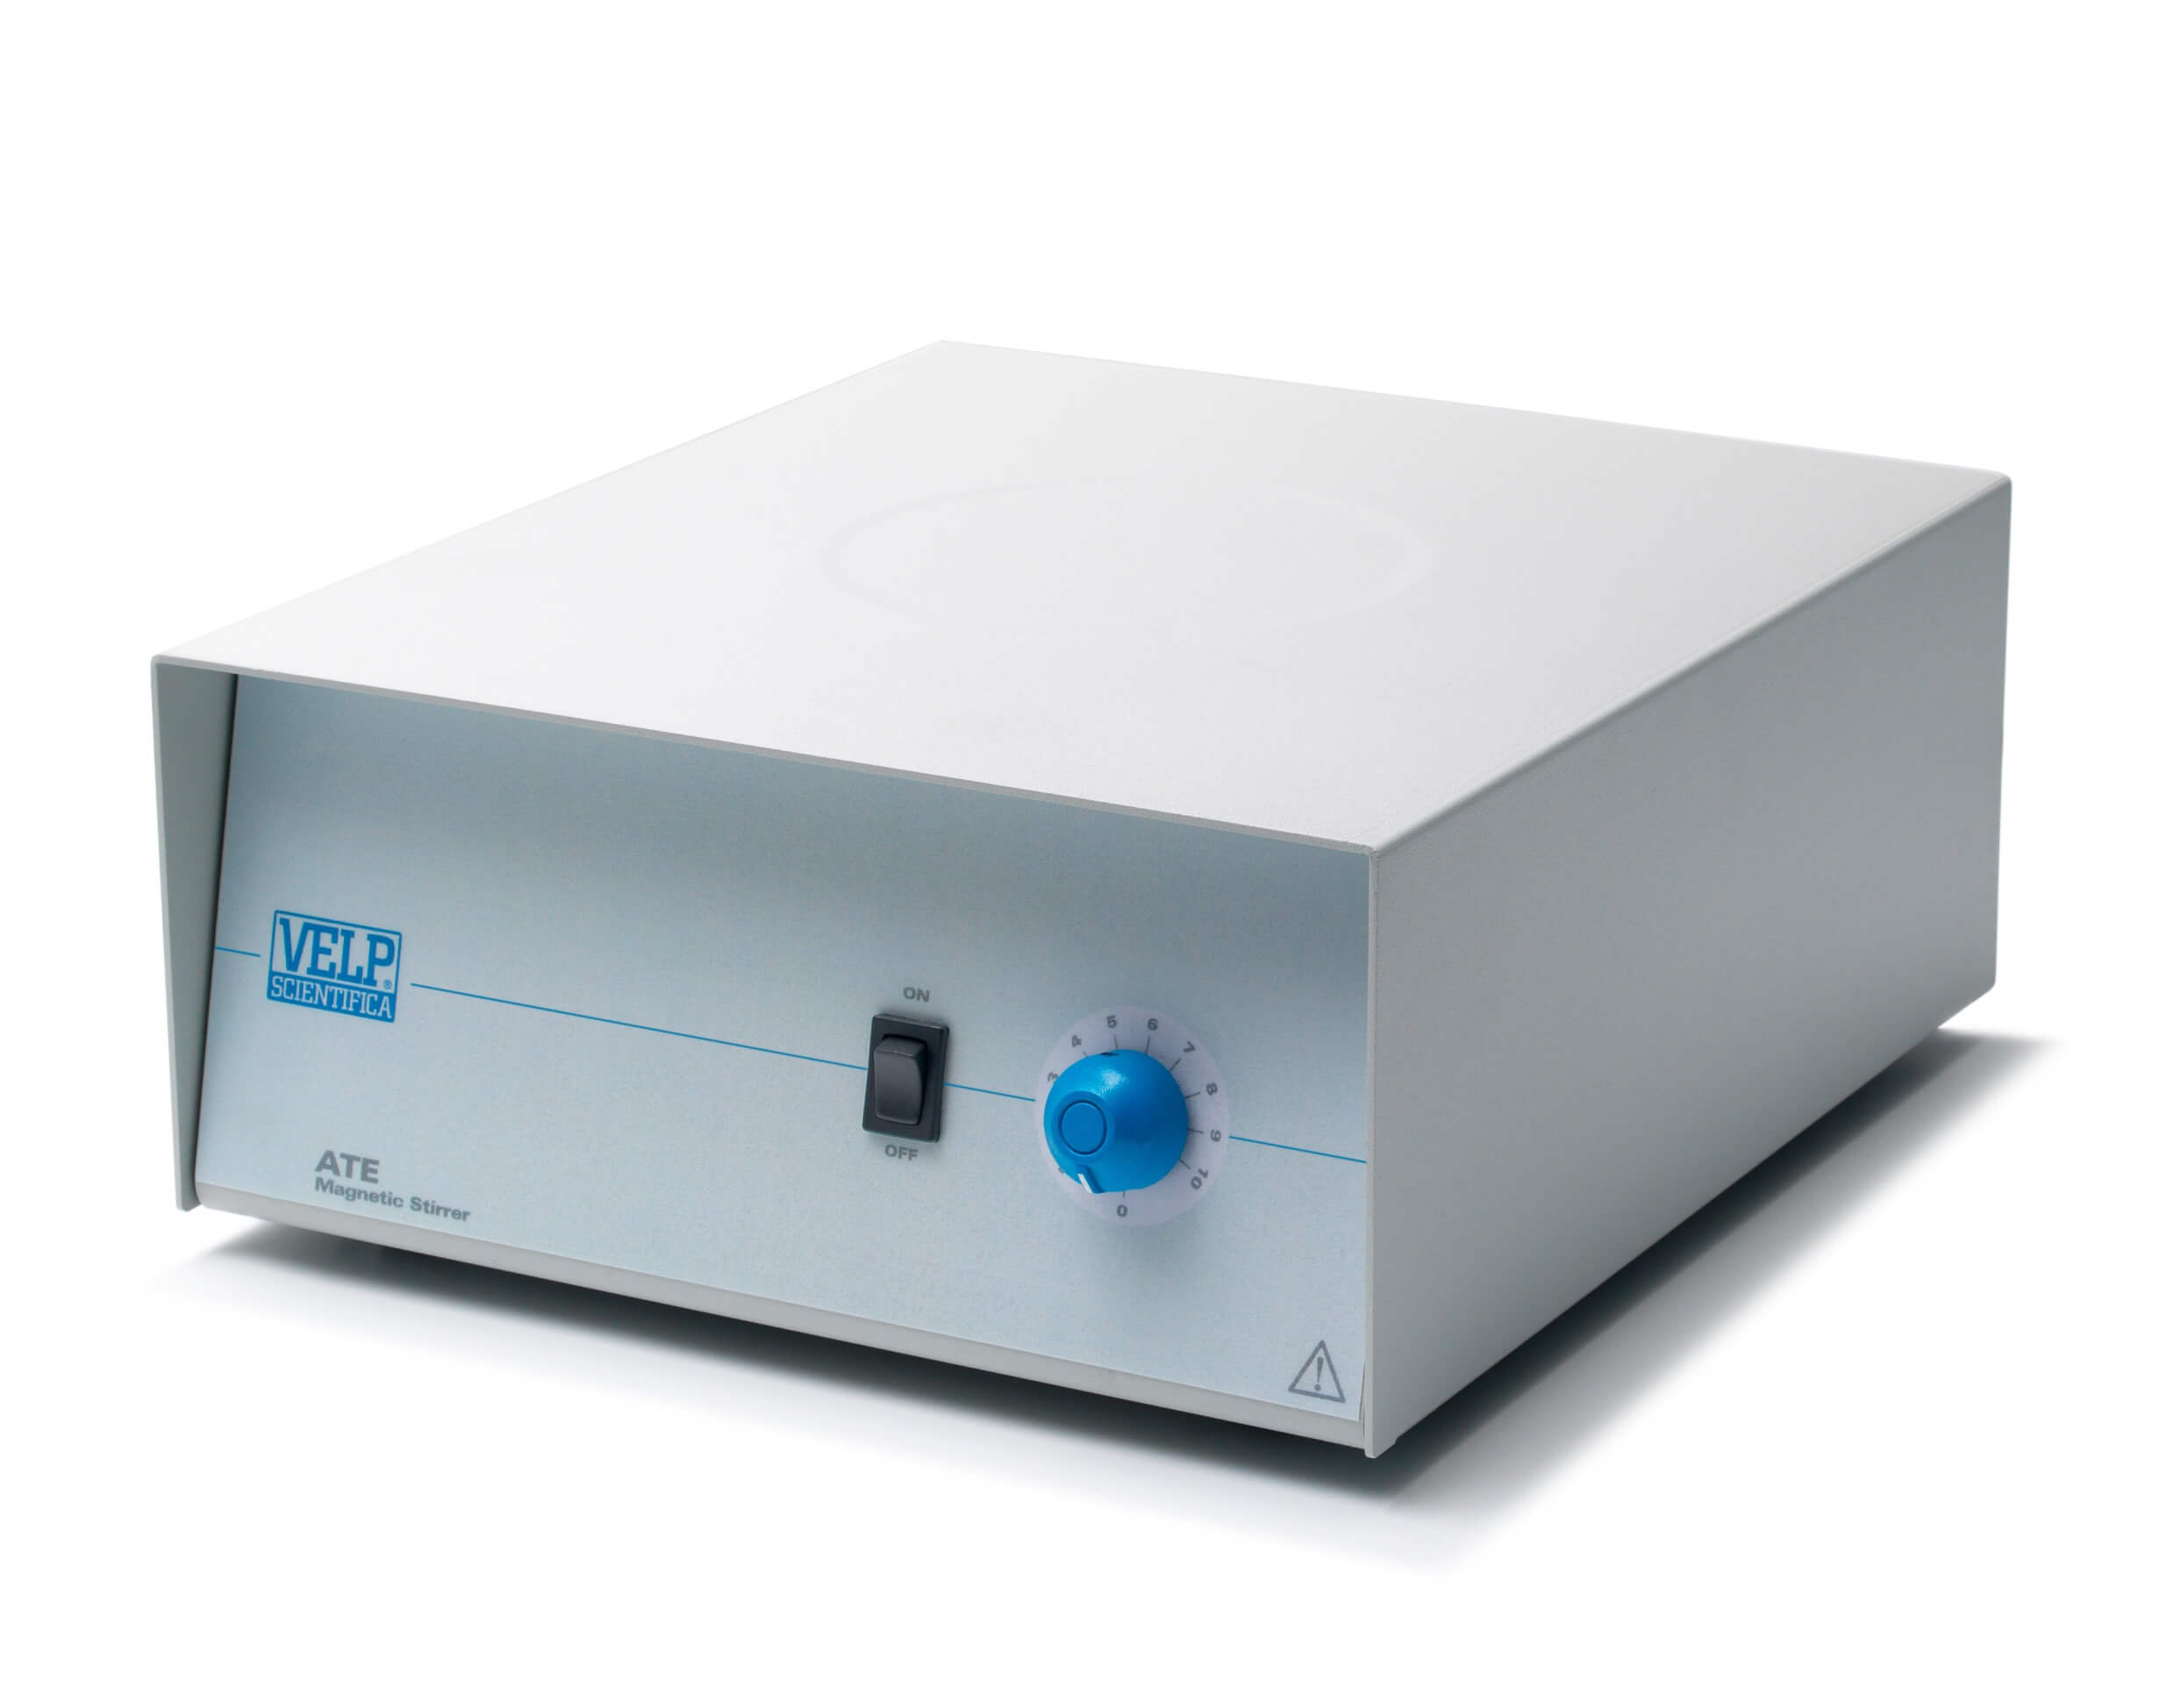 Velp - Magnetic Stirrers